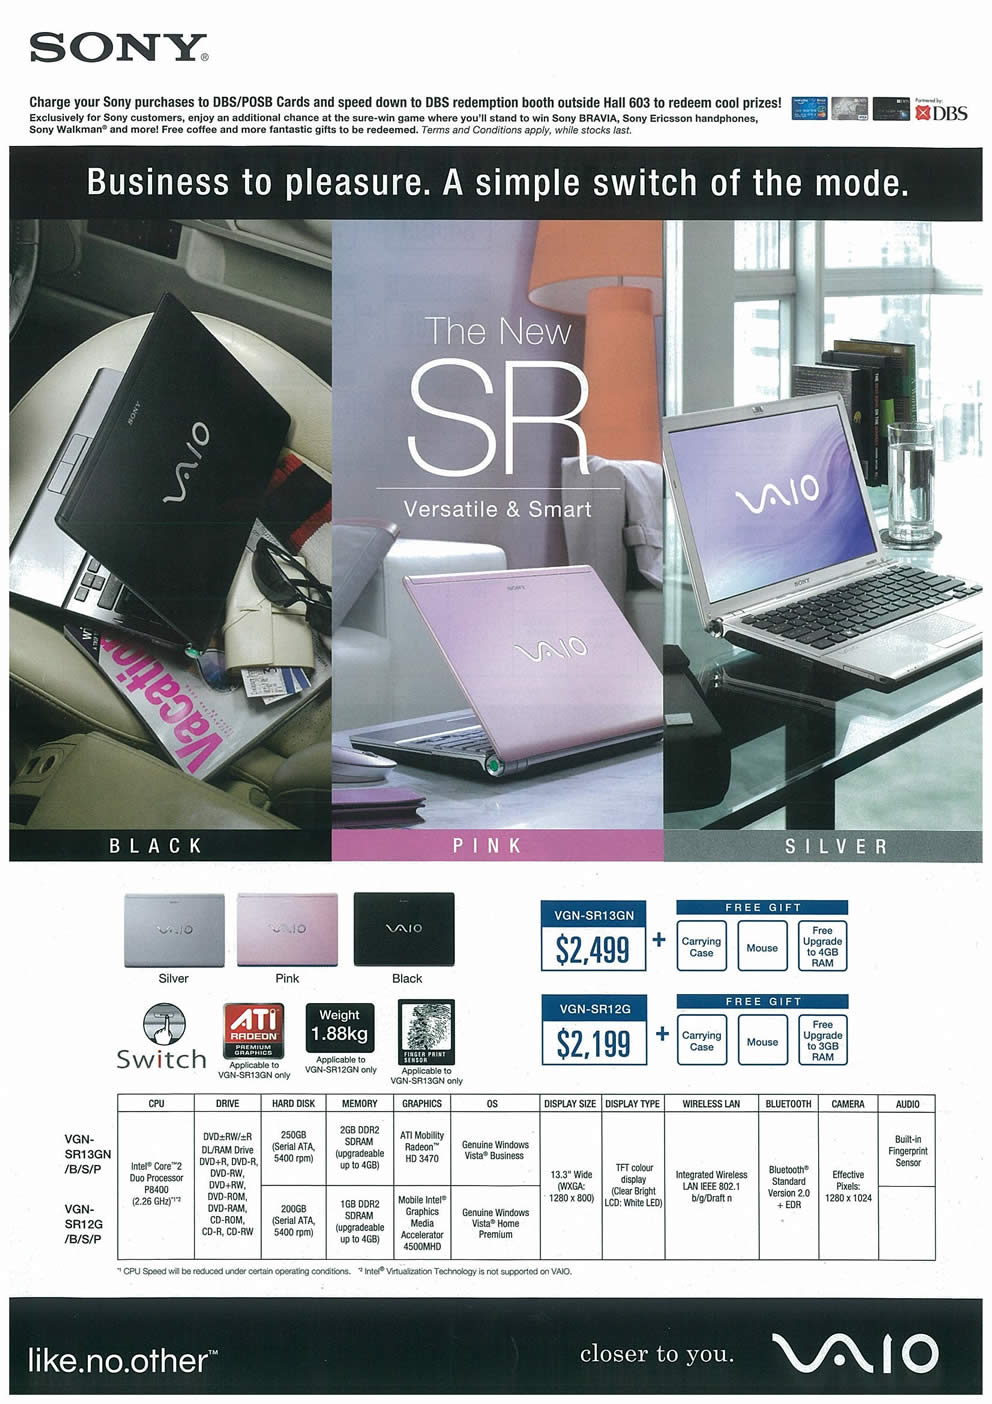 Comex 2008 price list image brochure of Sony VAIO Page 1